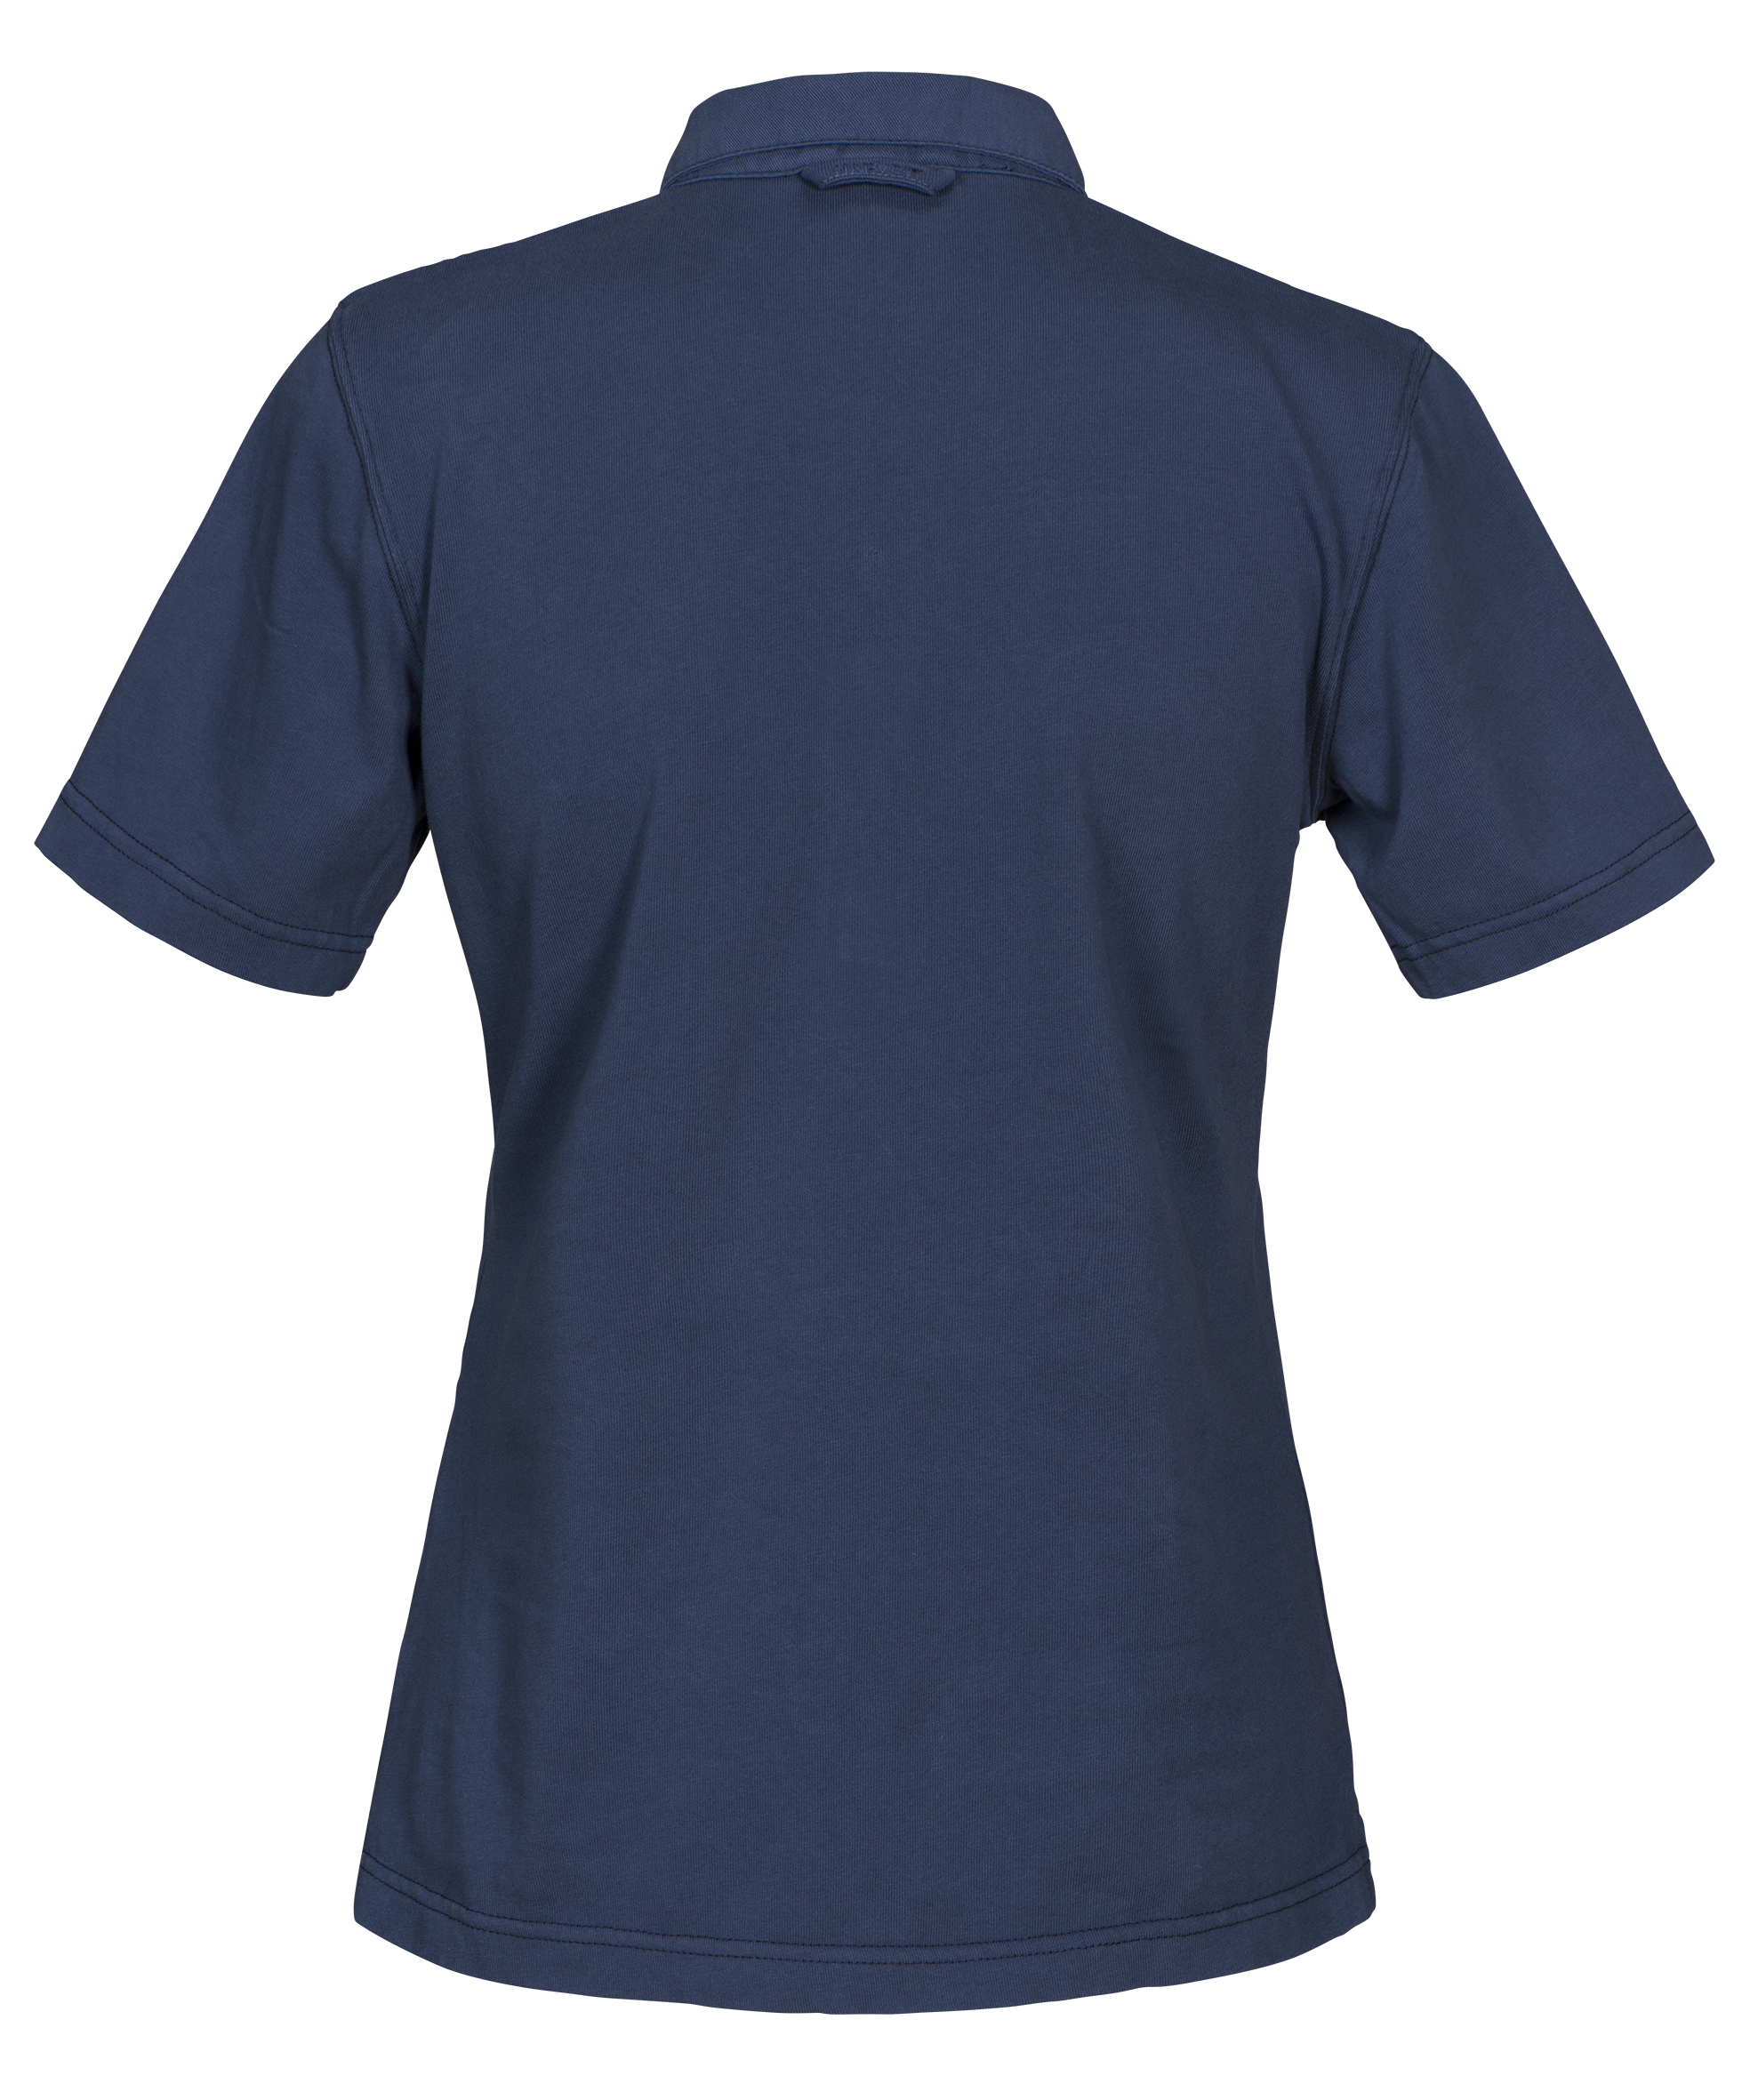 Amherst Ladies Polo in 555 Faded Blue (Back View)